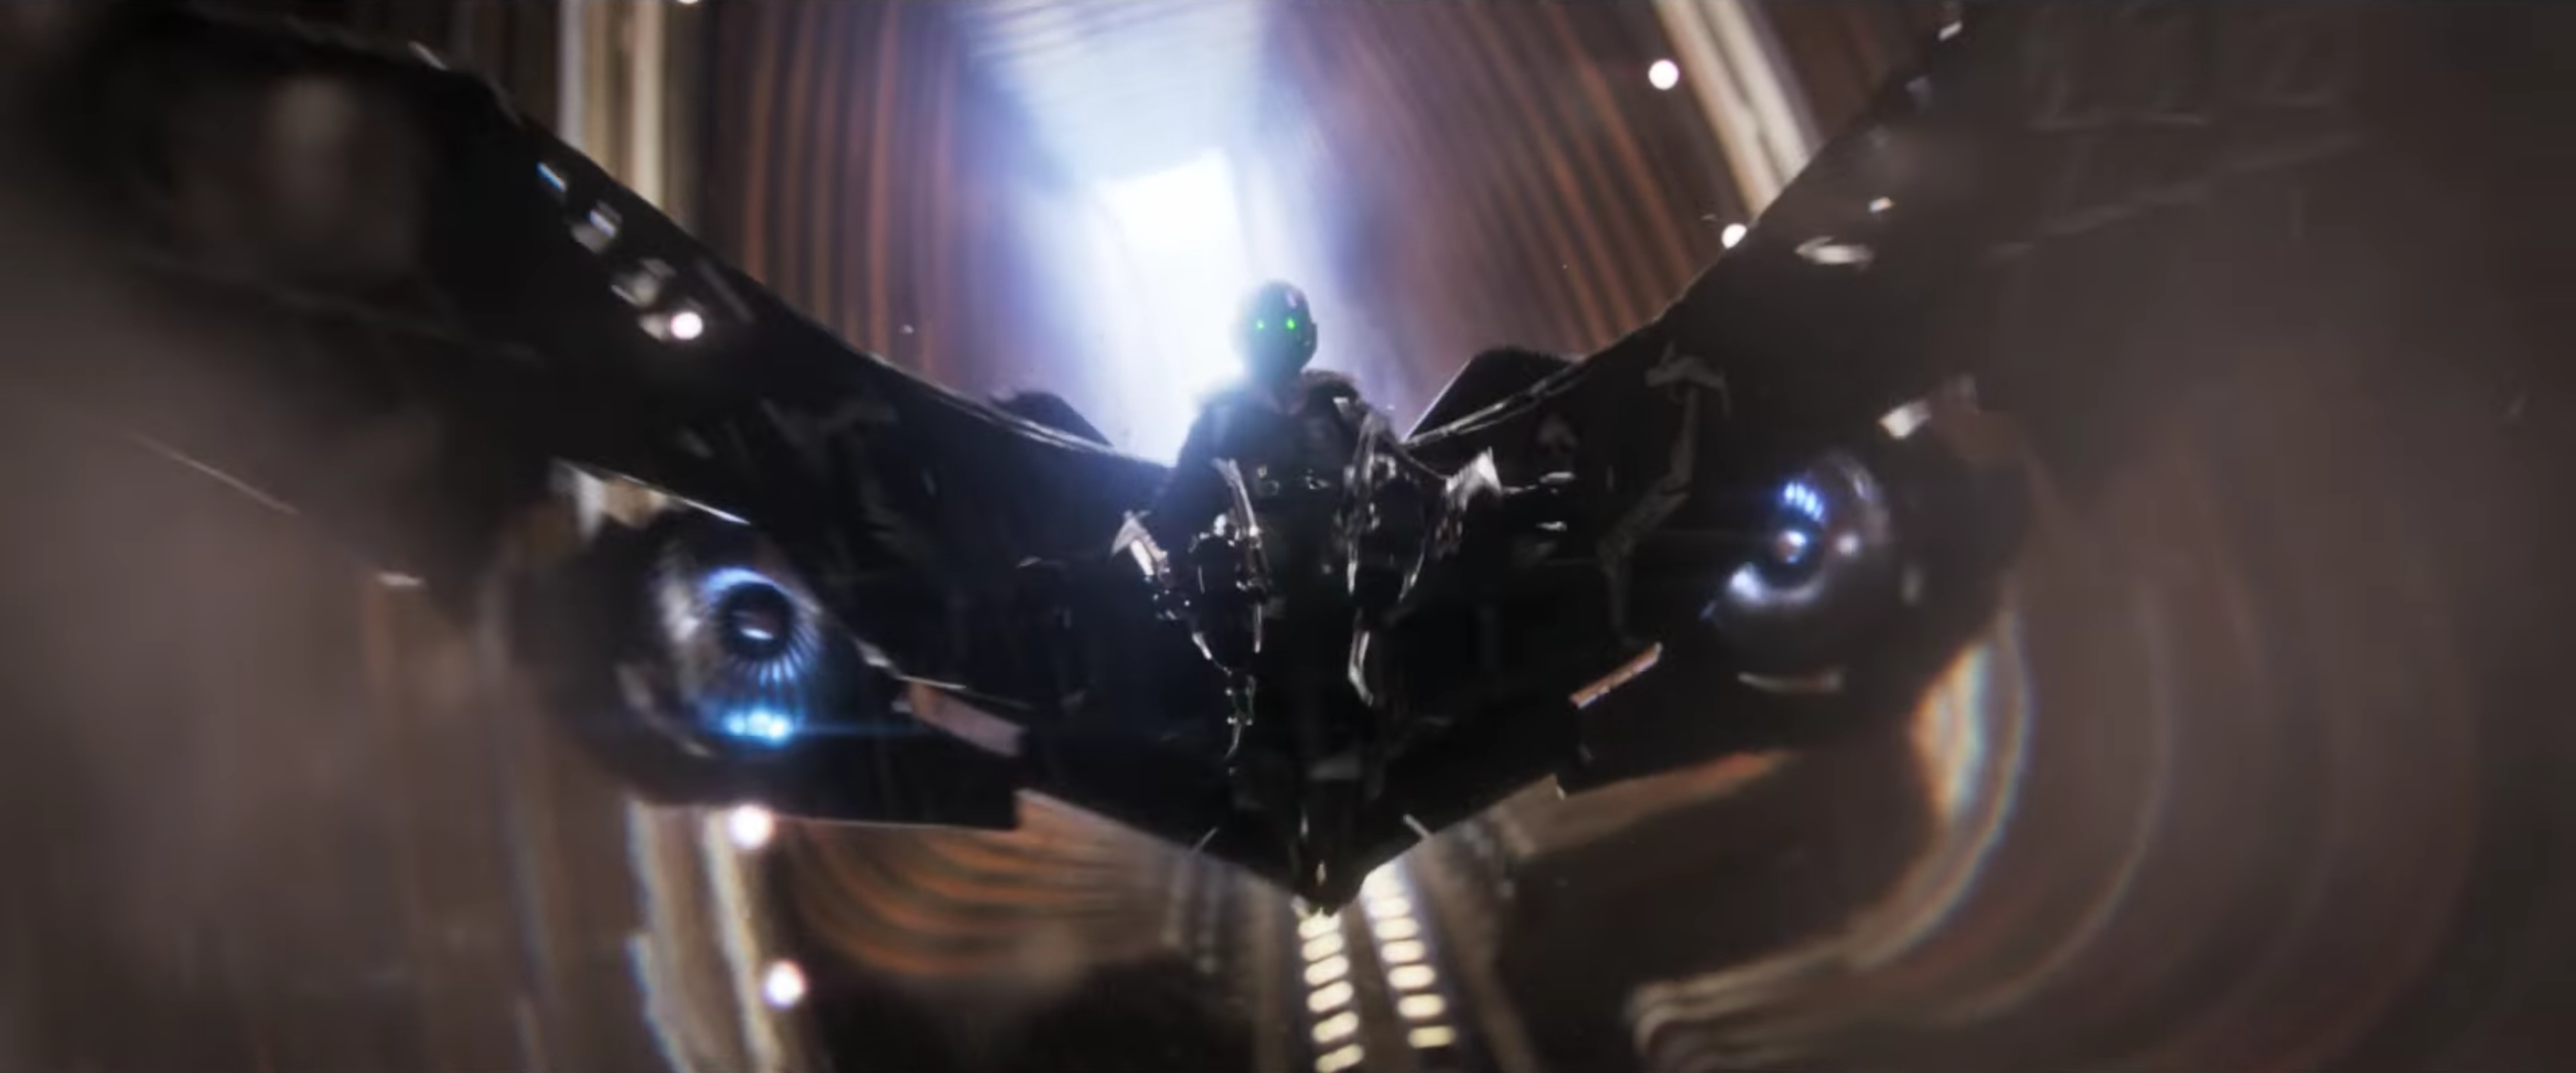 Spider Man Homecoming Trailer Images Reveal the Vulture in Action 3360x1400